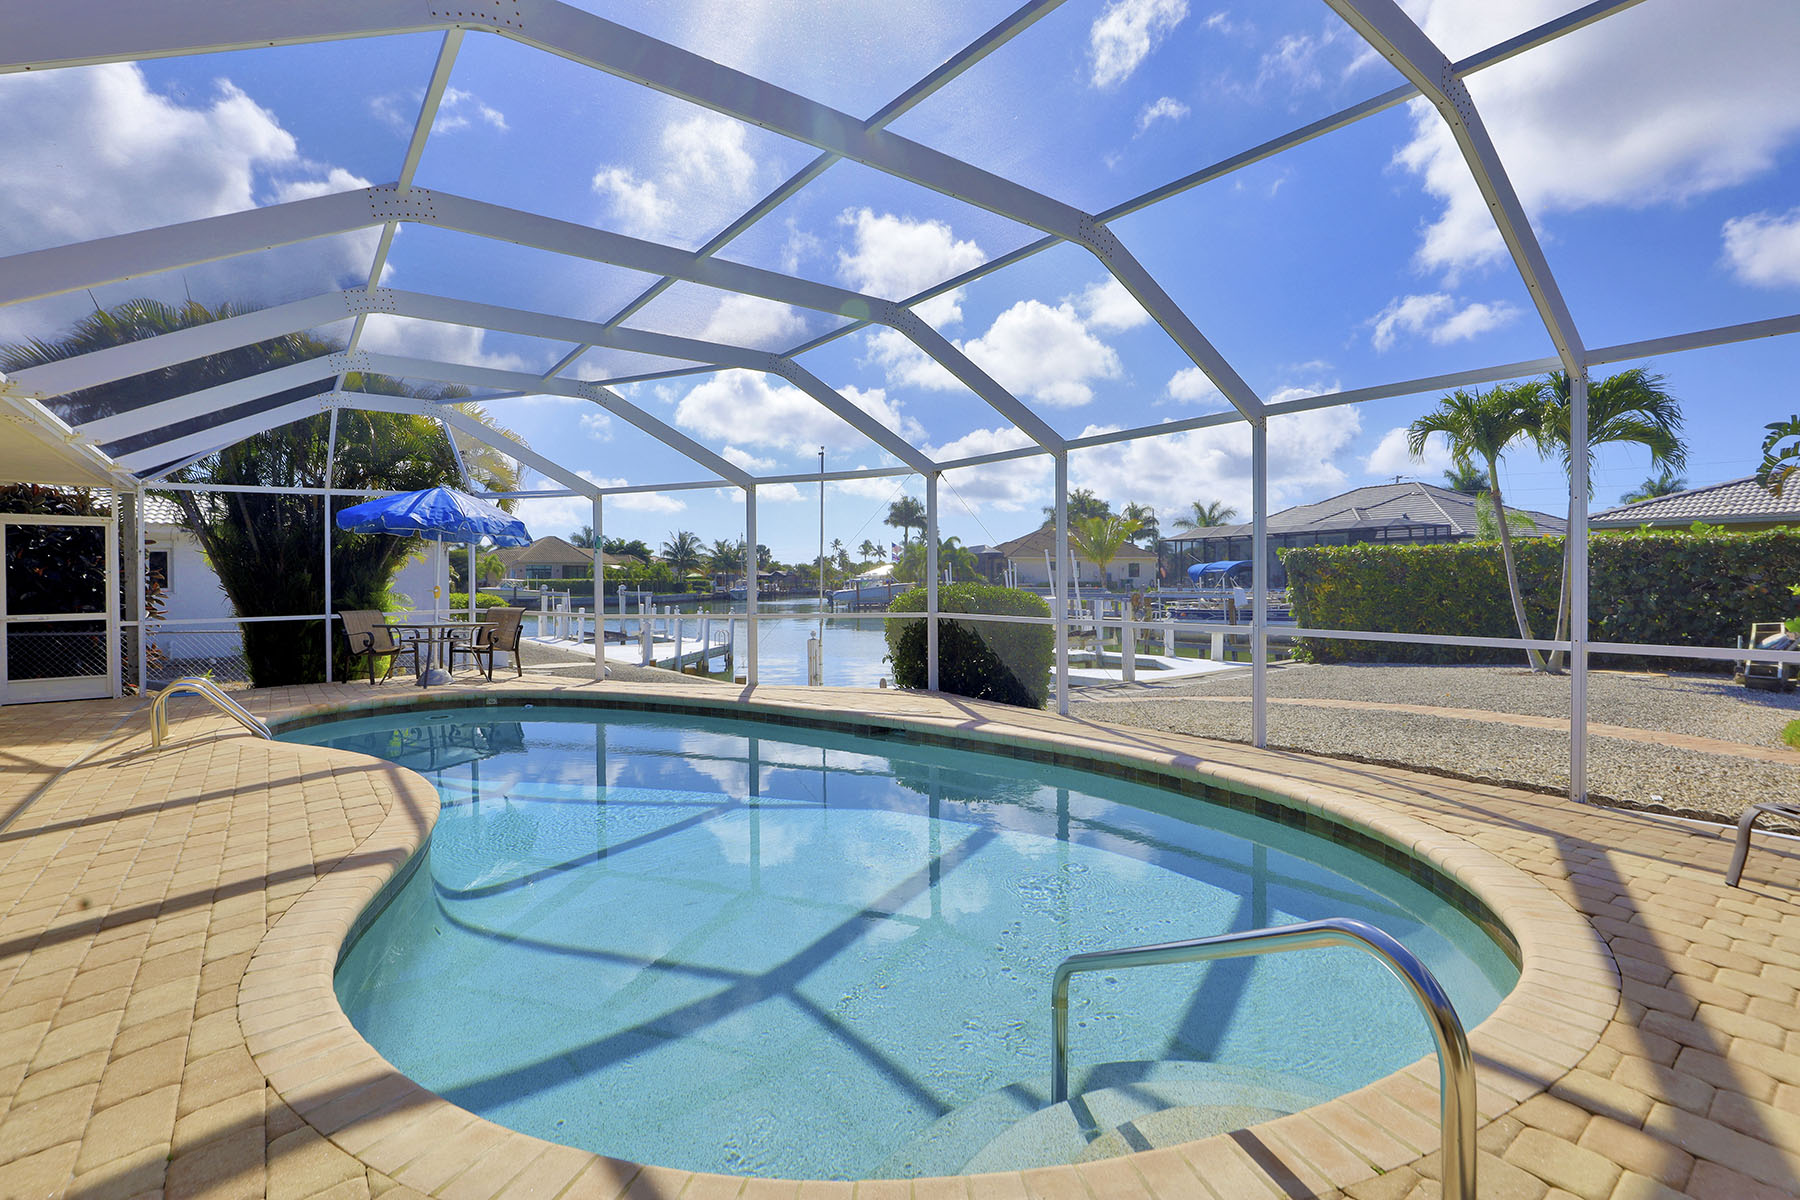 Single Family Homes for Sale at MARCO ISLAND 928 Sundrop Court, Marco Island, Florida 34145 United States